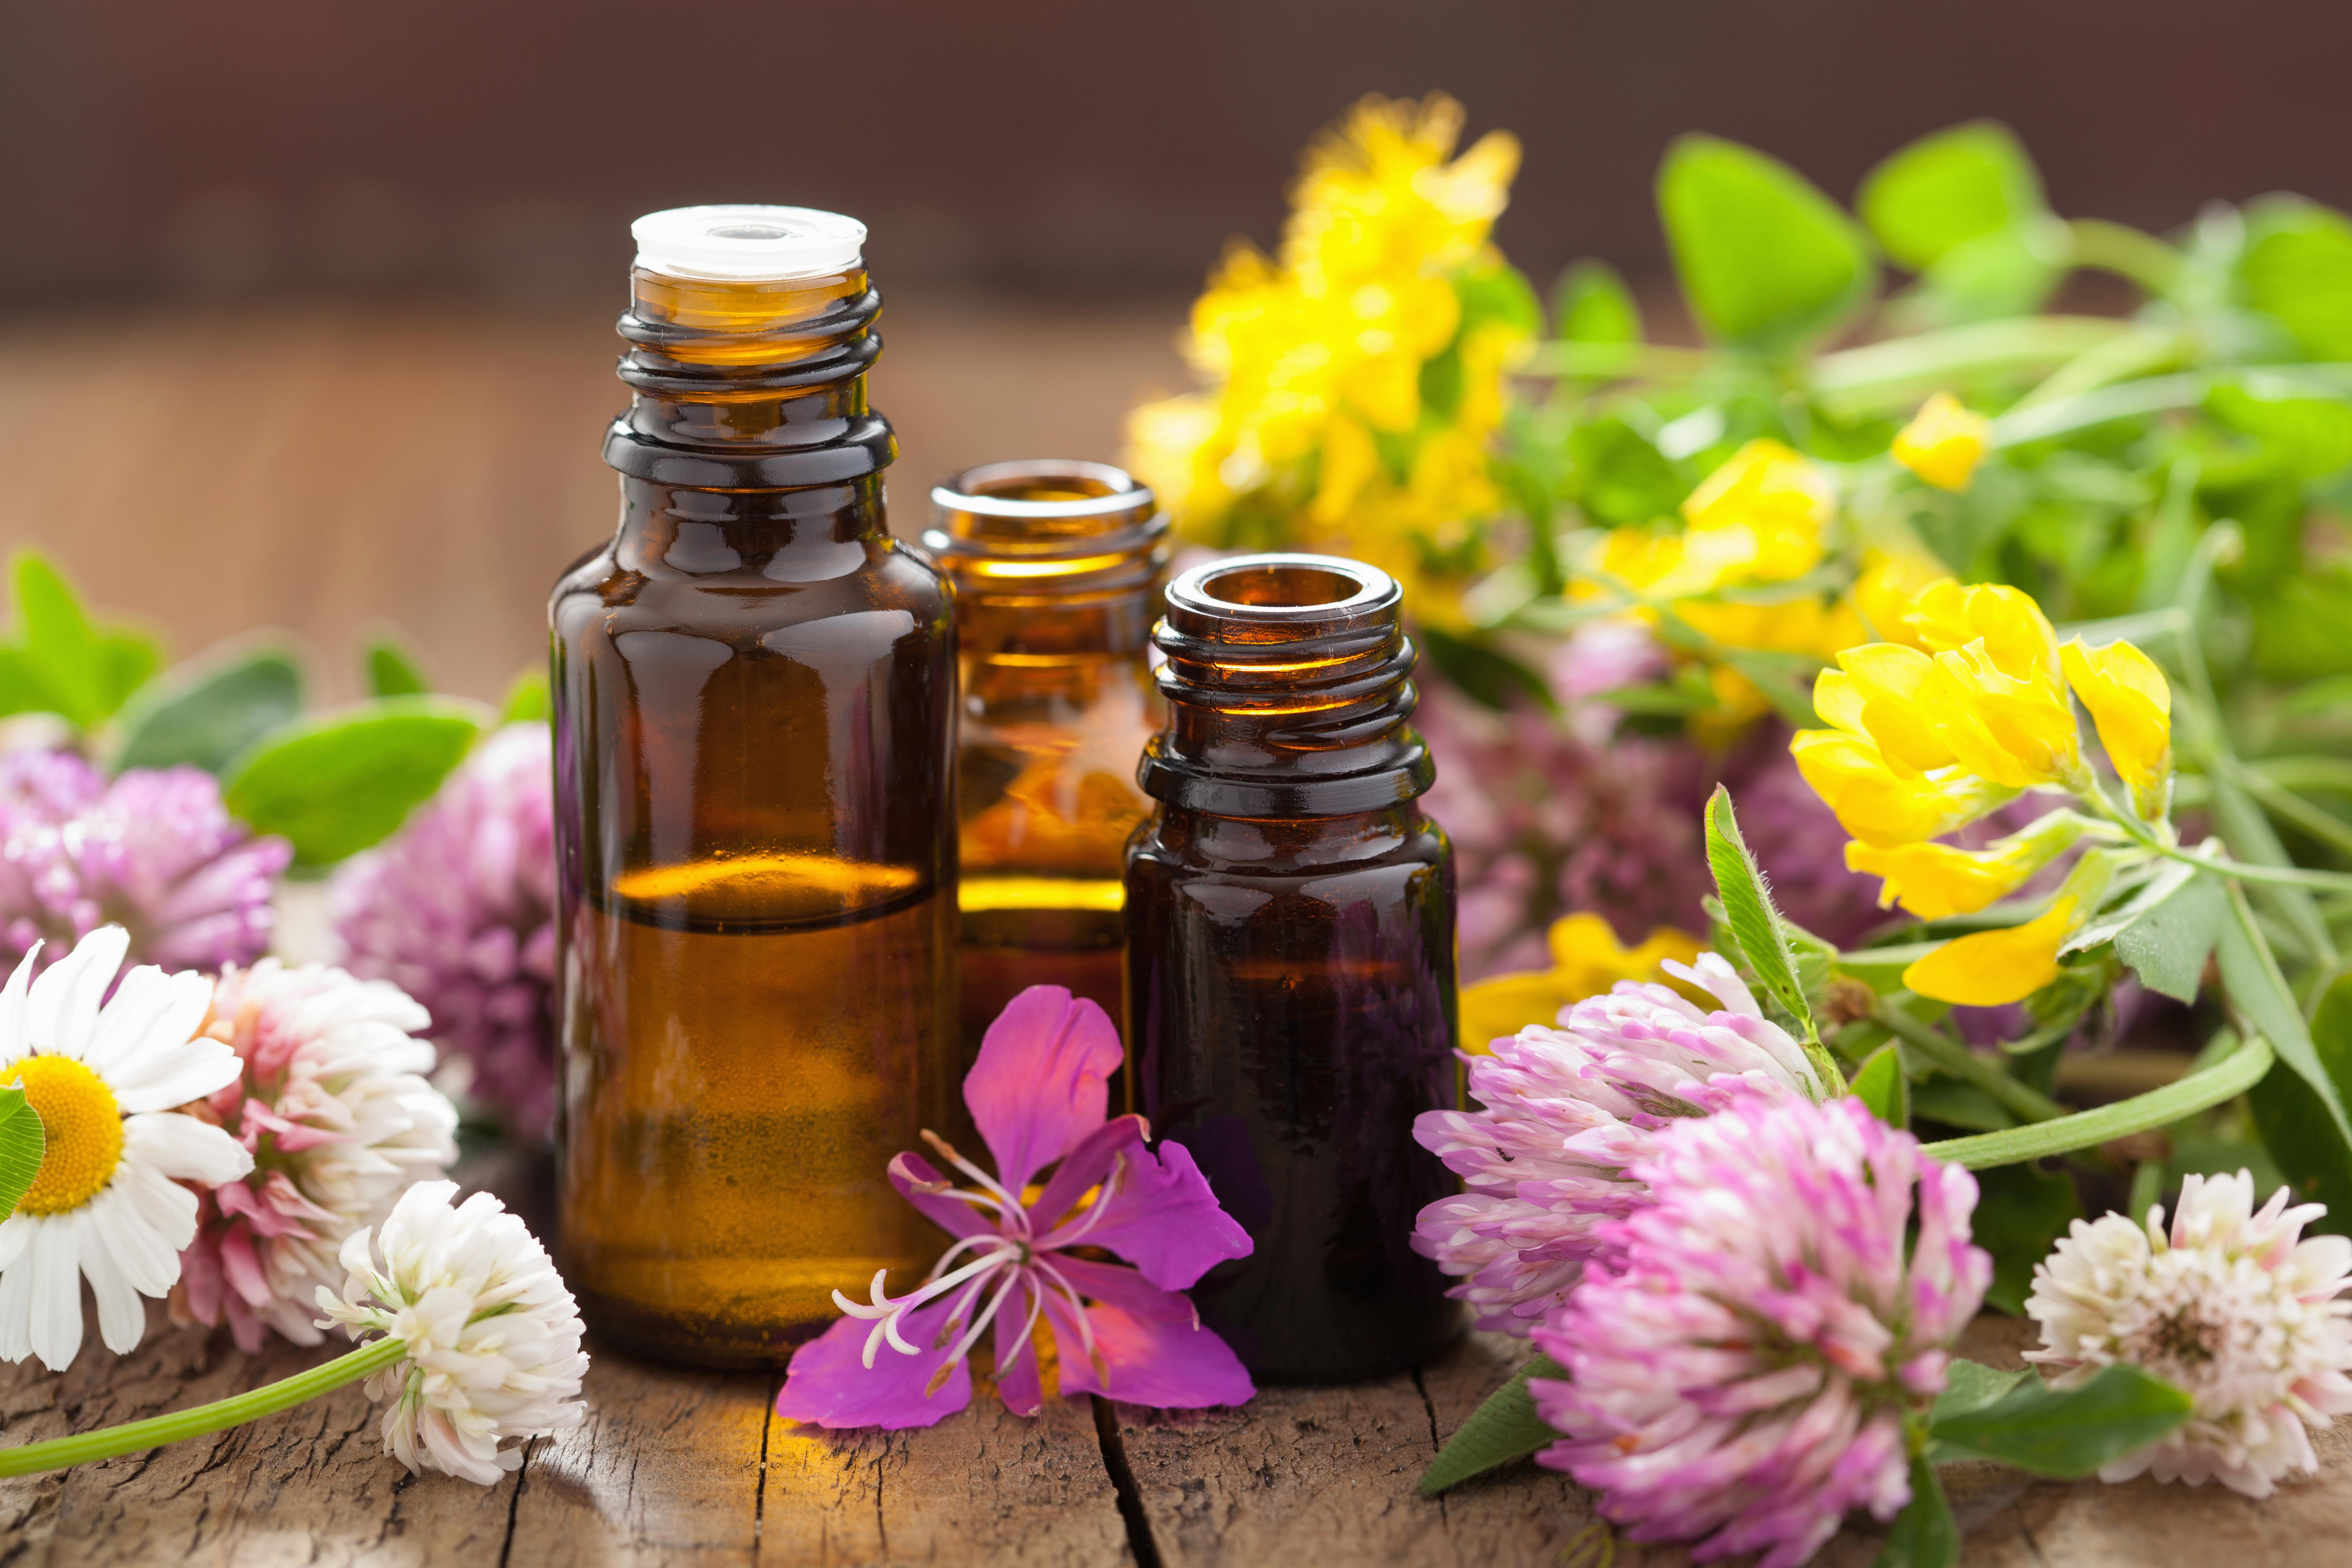 Getting Started with Essential Oils - Sutton Coldfield